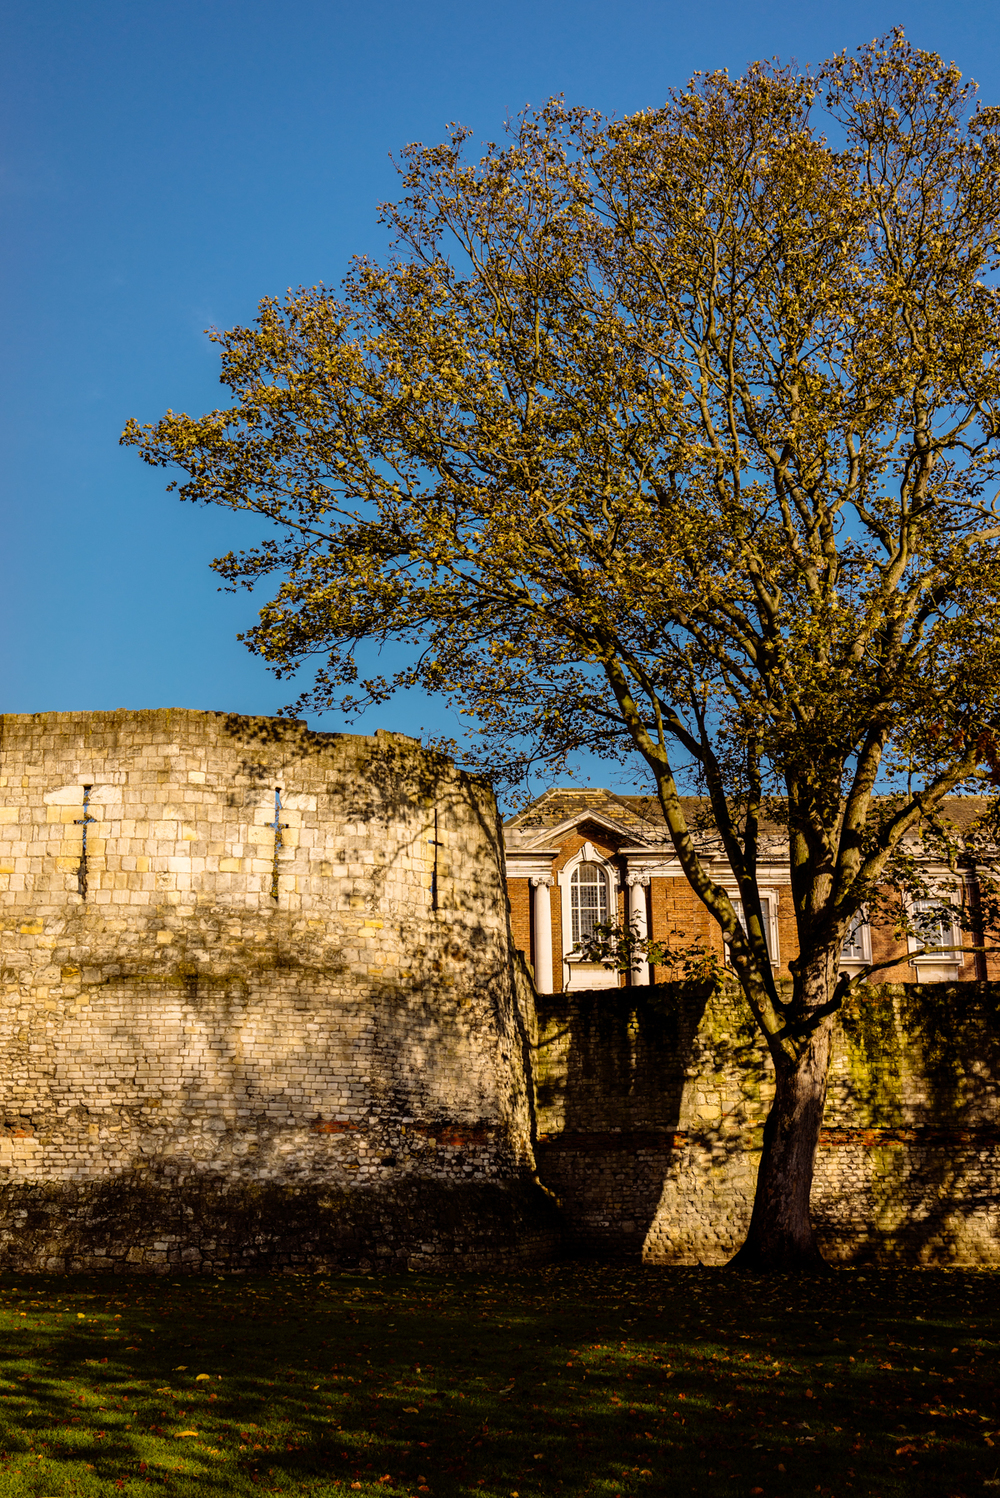 The Multangular Tower and Roman Wall | A7R & SEL35F28Z | 1/1250s f/4.5 ISO100 35mm